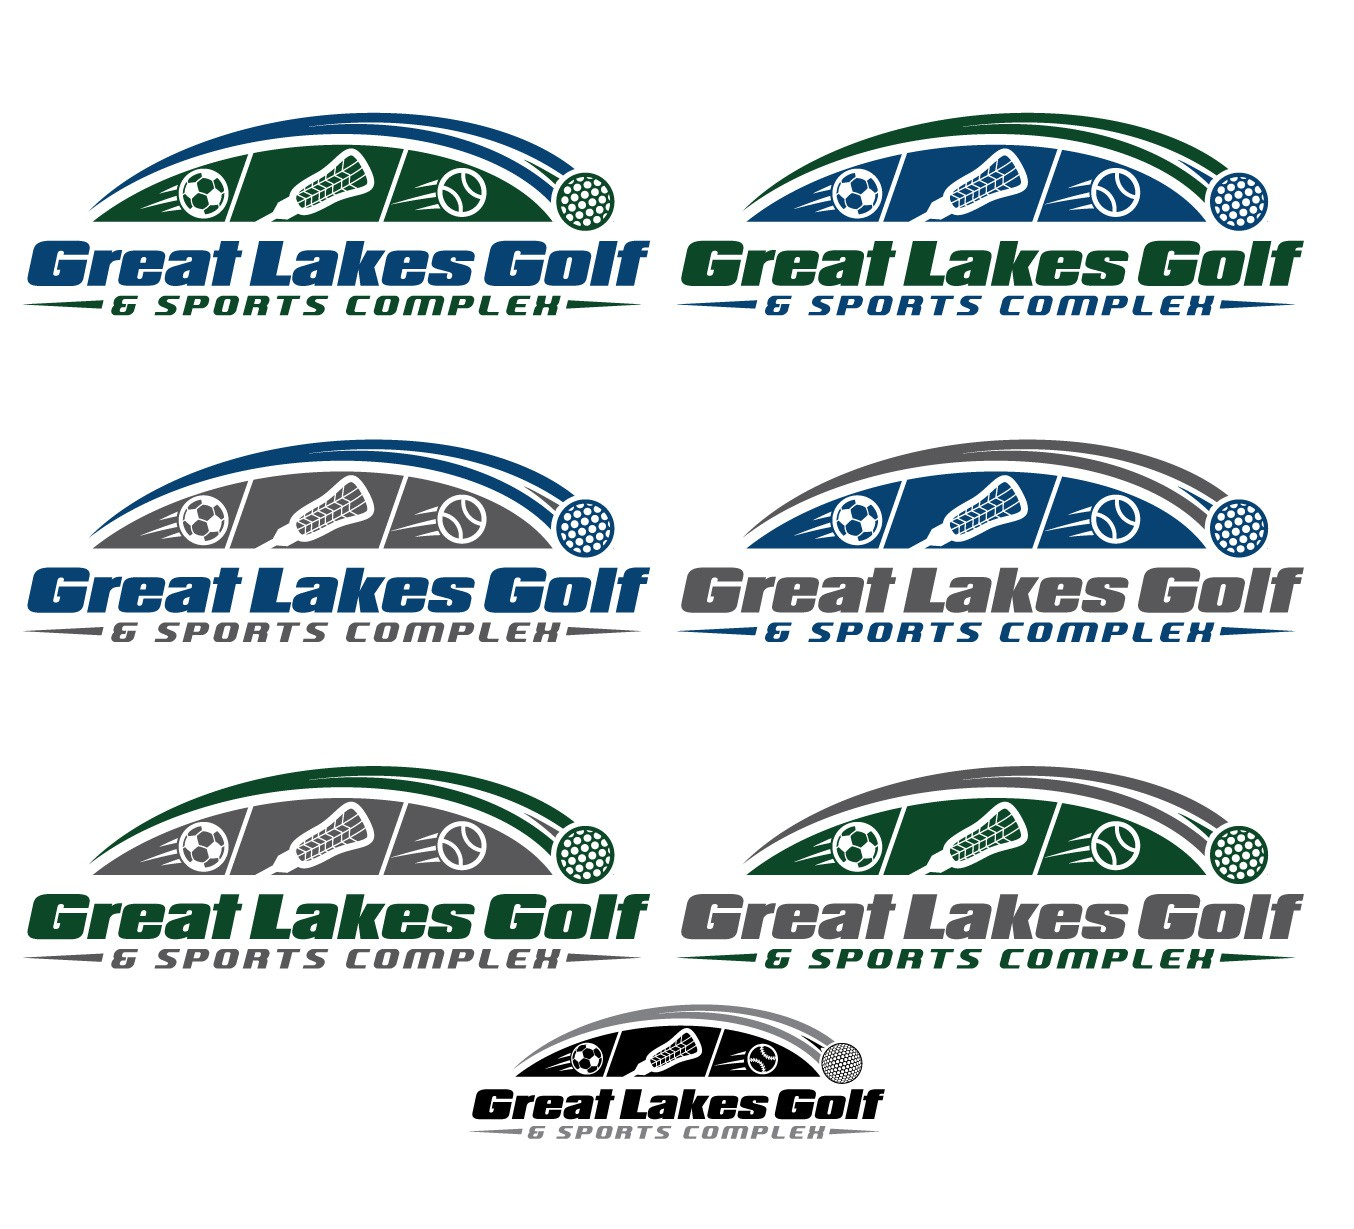 New logo wanted for Great Lakes Golf & Sports Complex